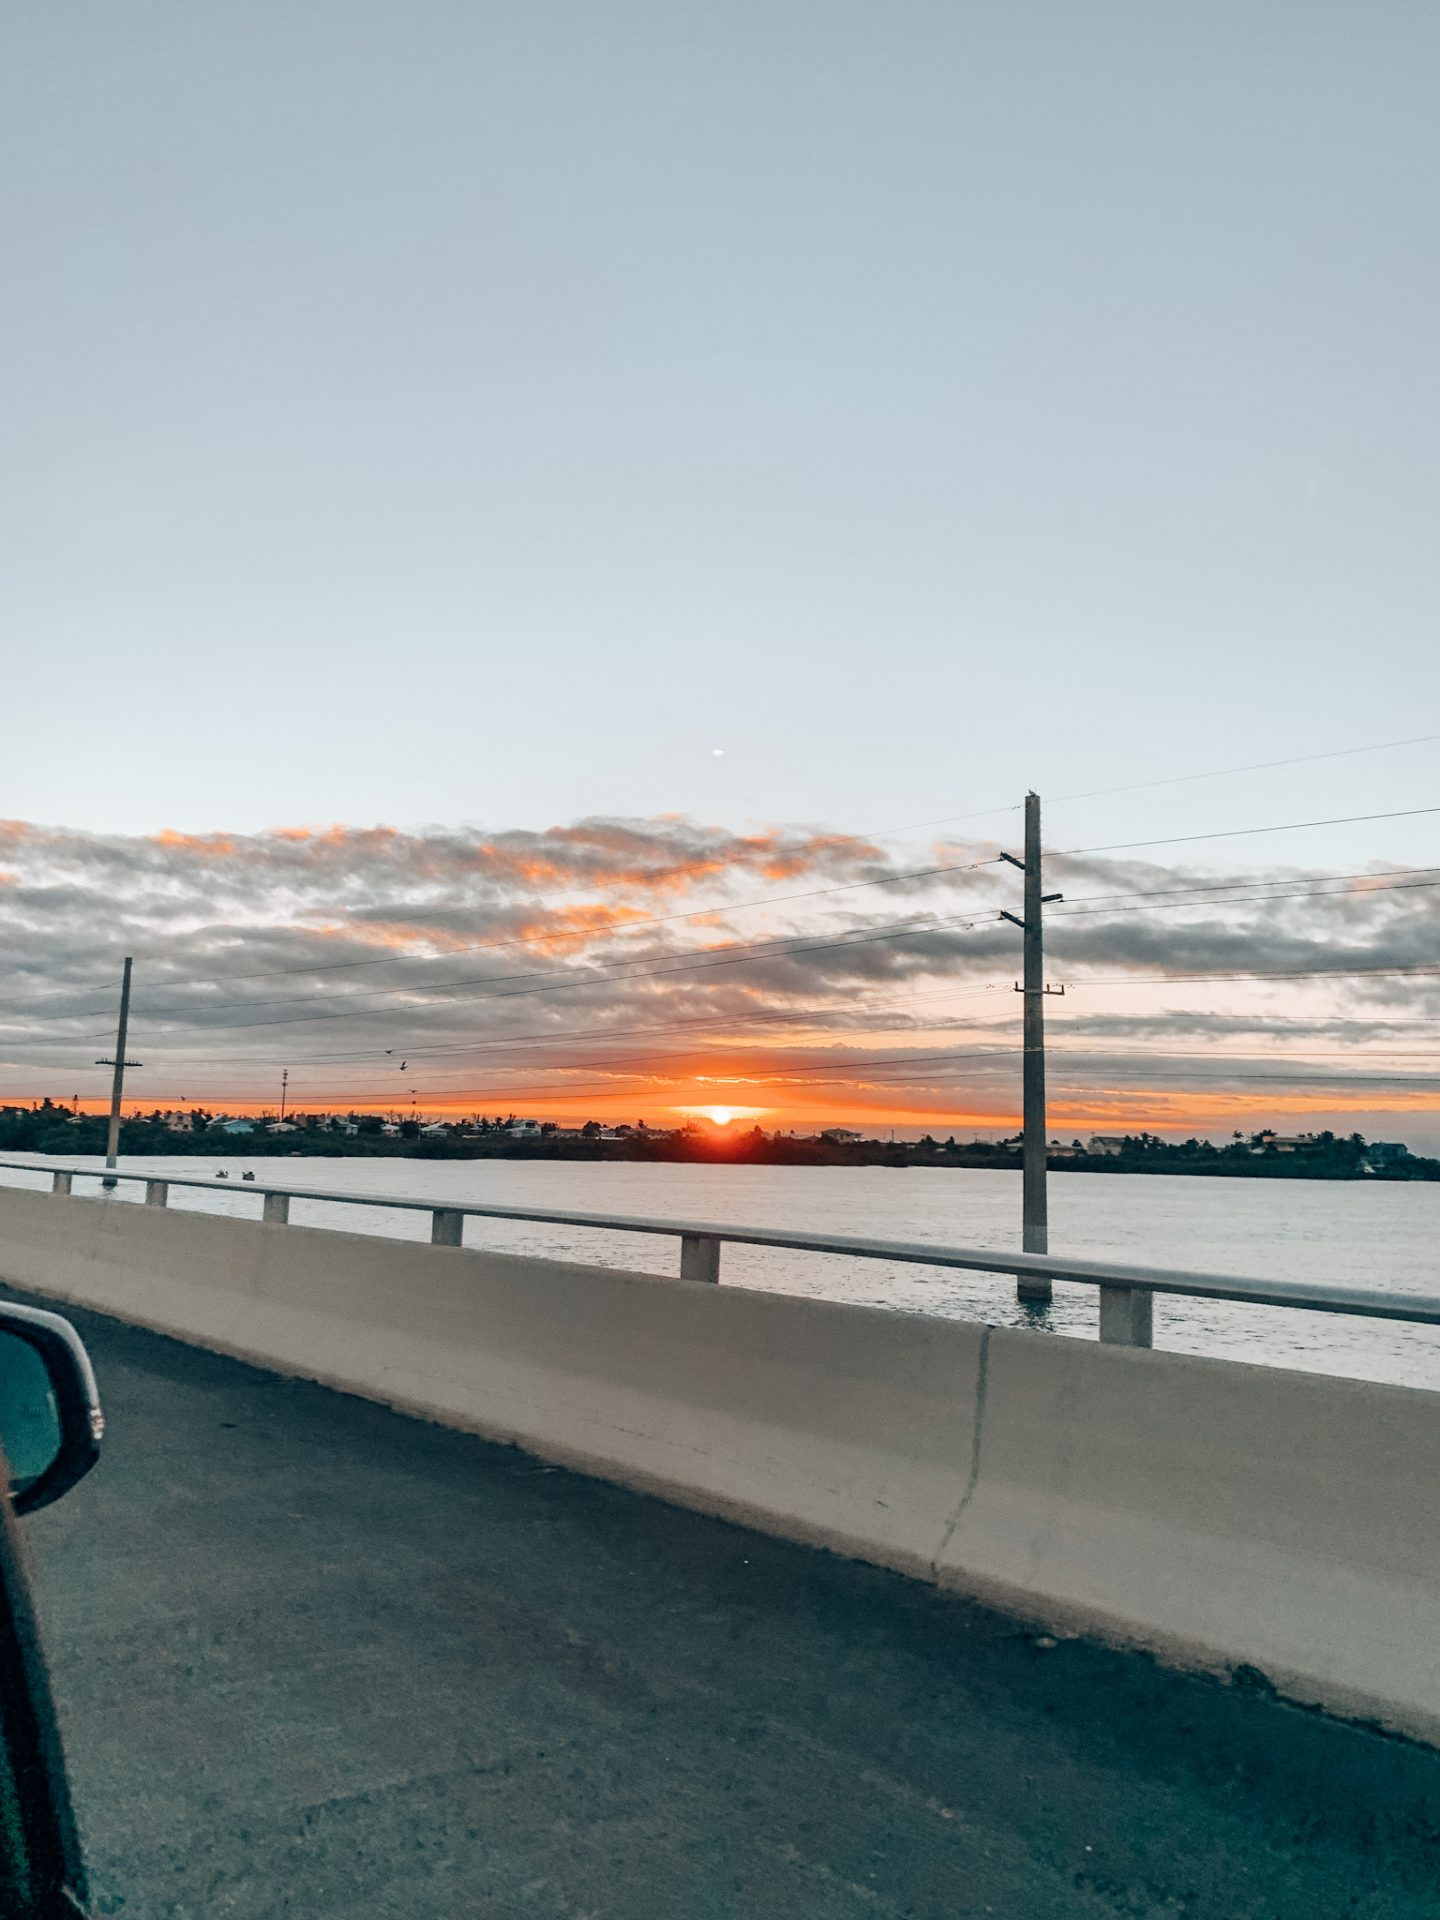 Sunset over the famous seven mile bridge